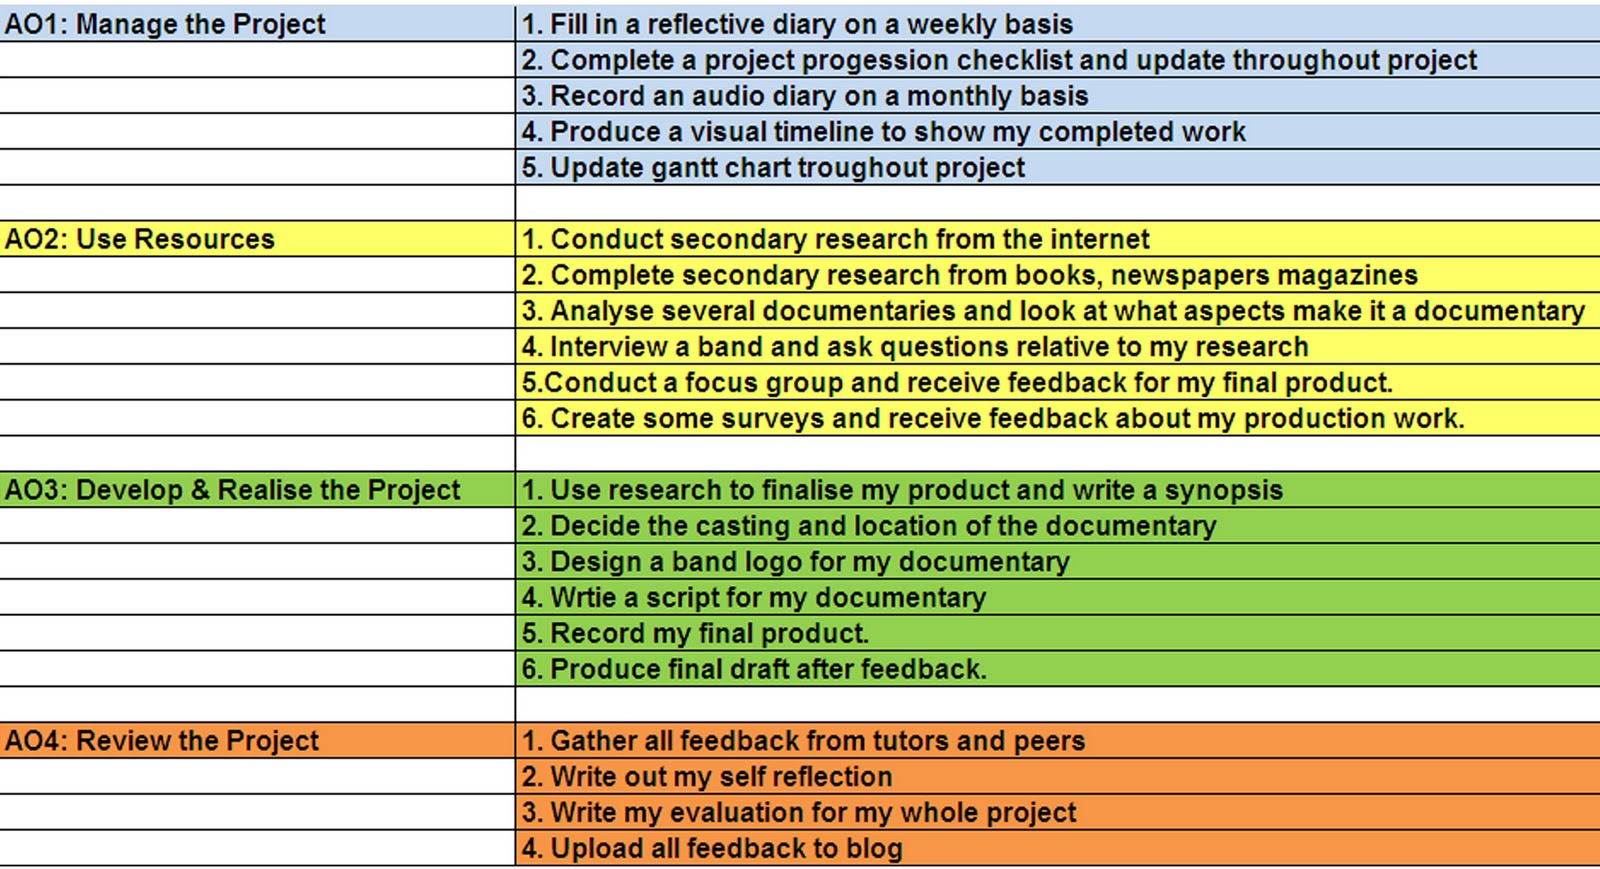 James newton extended project extended project gantt chart ao1 this is my gantt chart that will help me manage my project have and an overlook of what objectives and work i have to complete throughout the my project nvjuhfo Gallery